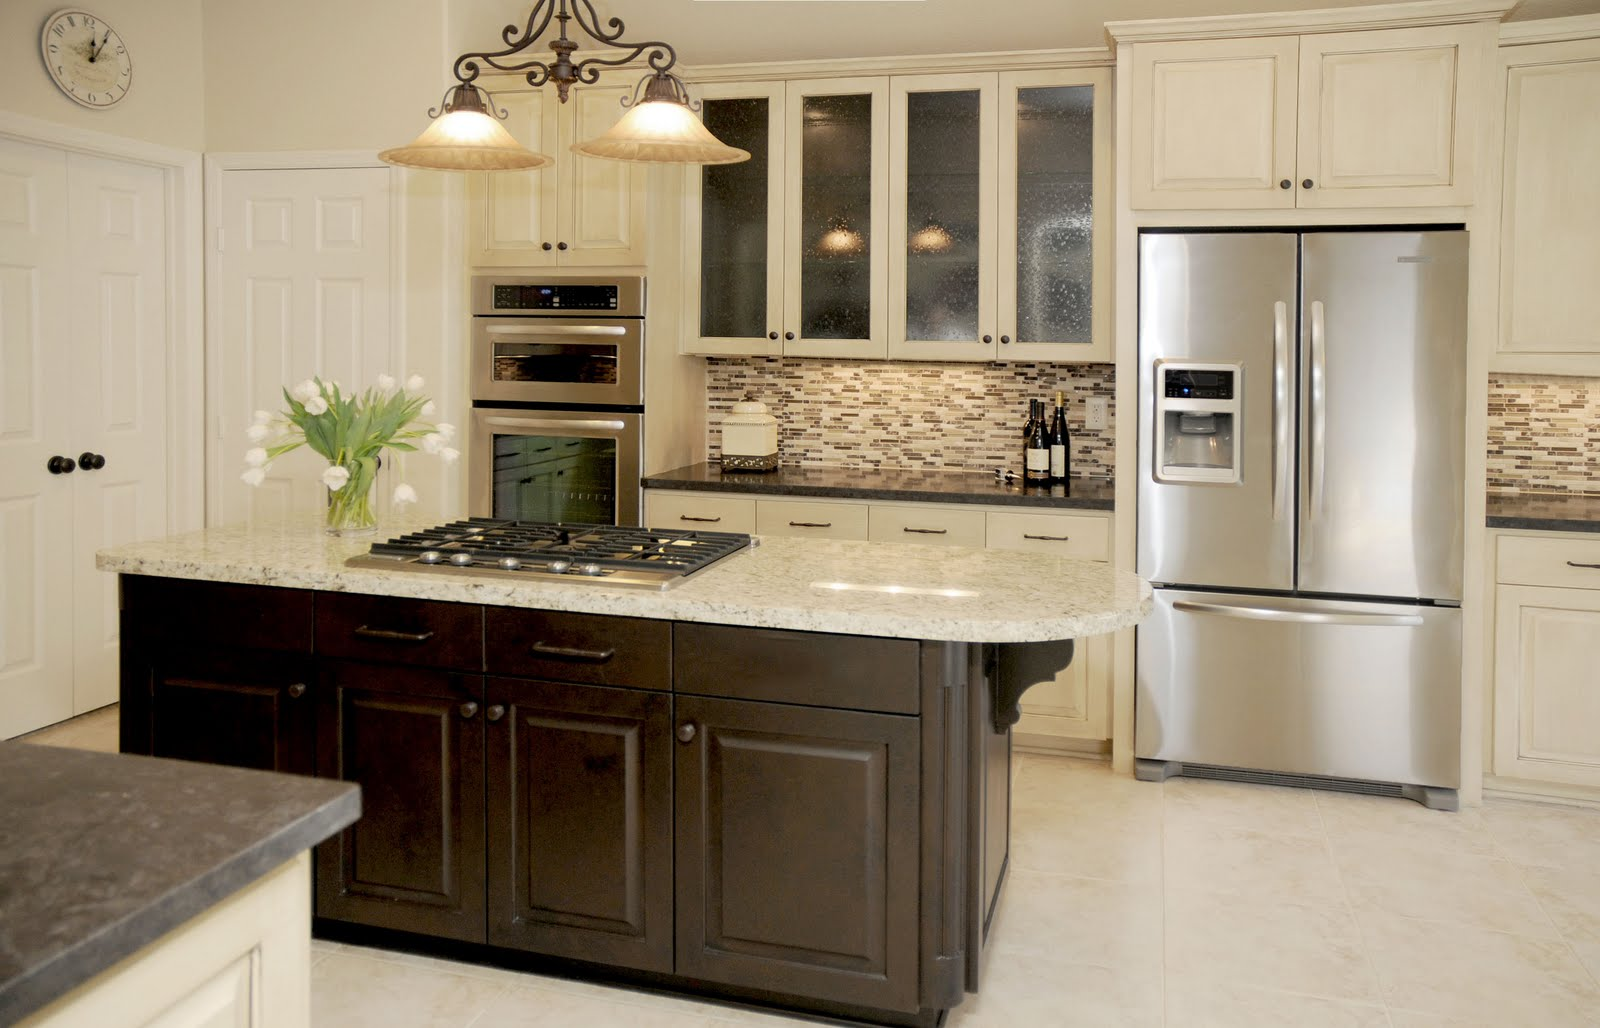 Galley kitchen remodels before and after kitchen design for Kitchen redesign